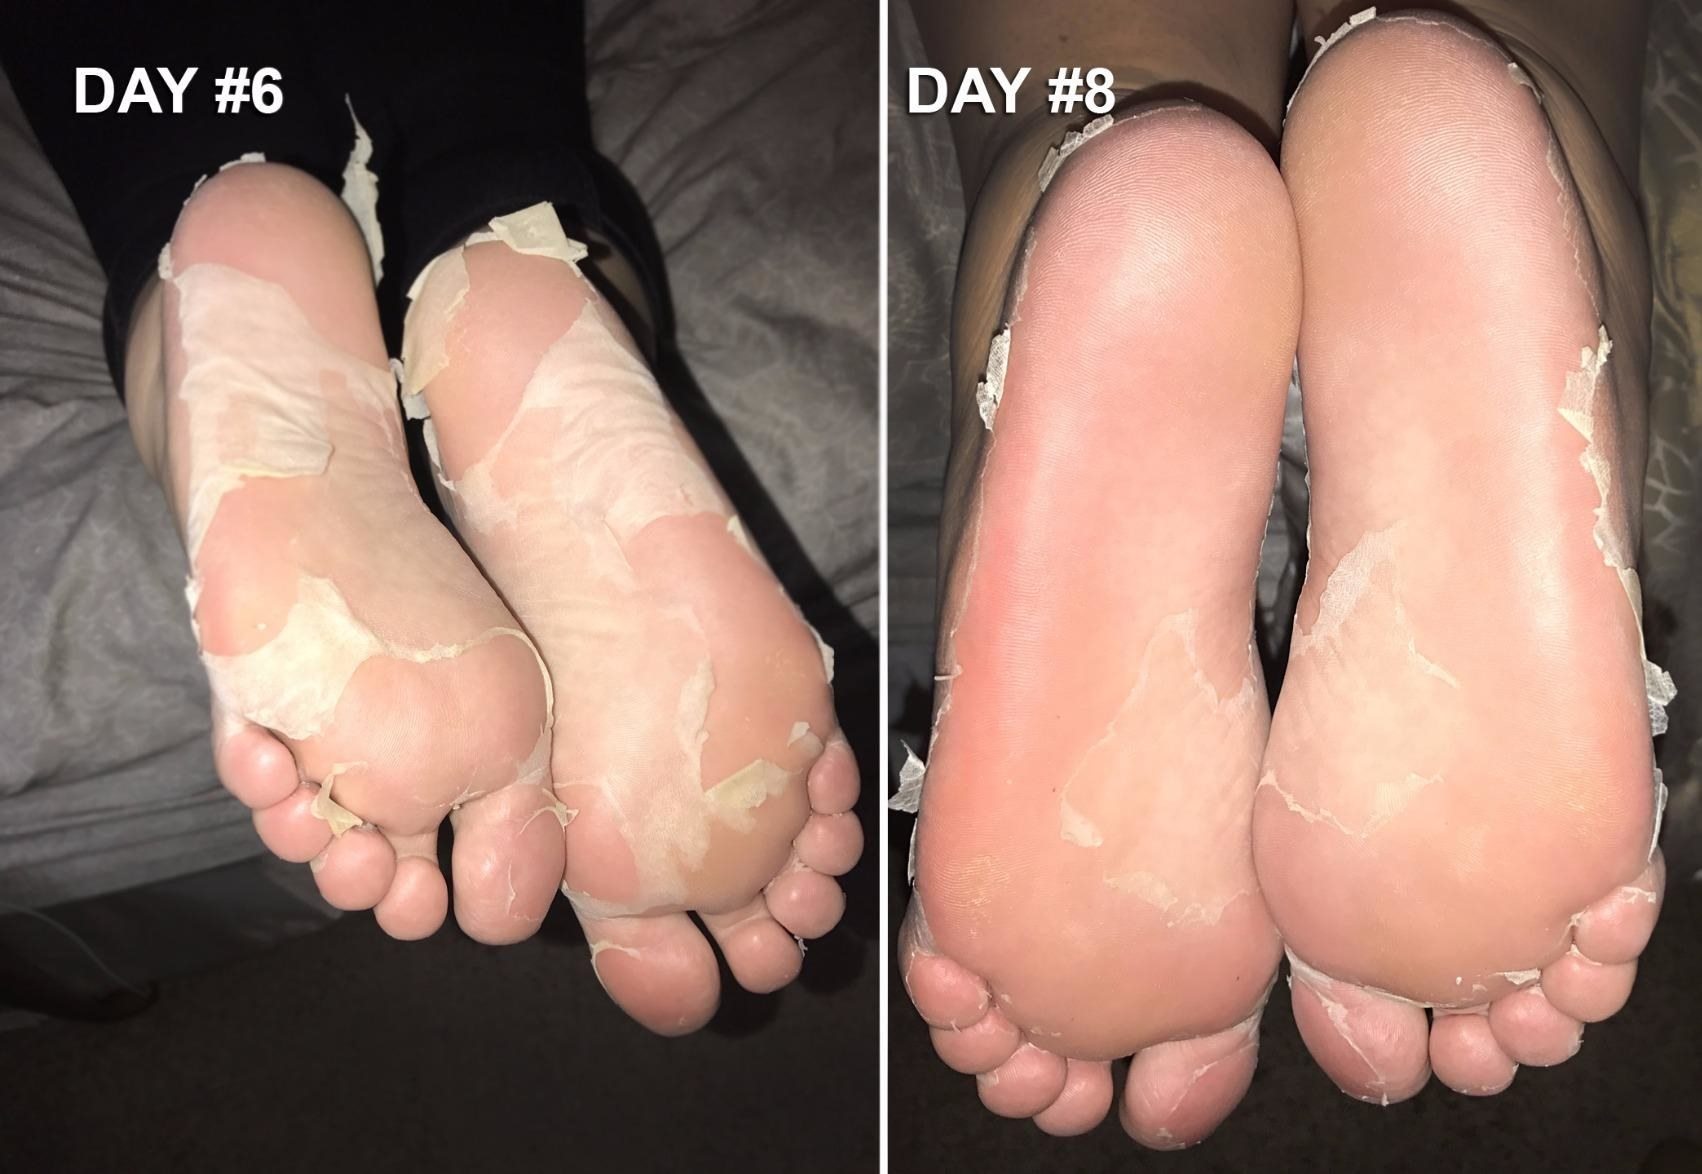 A before photo showing feet peeling excessively and an after photo showing smooth feet with less peeling